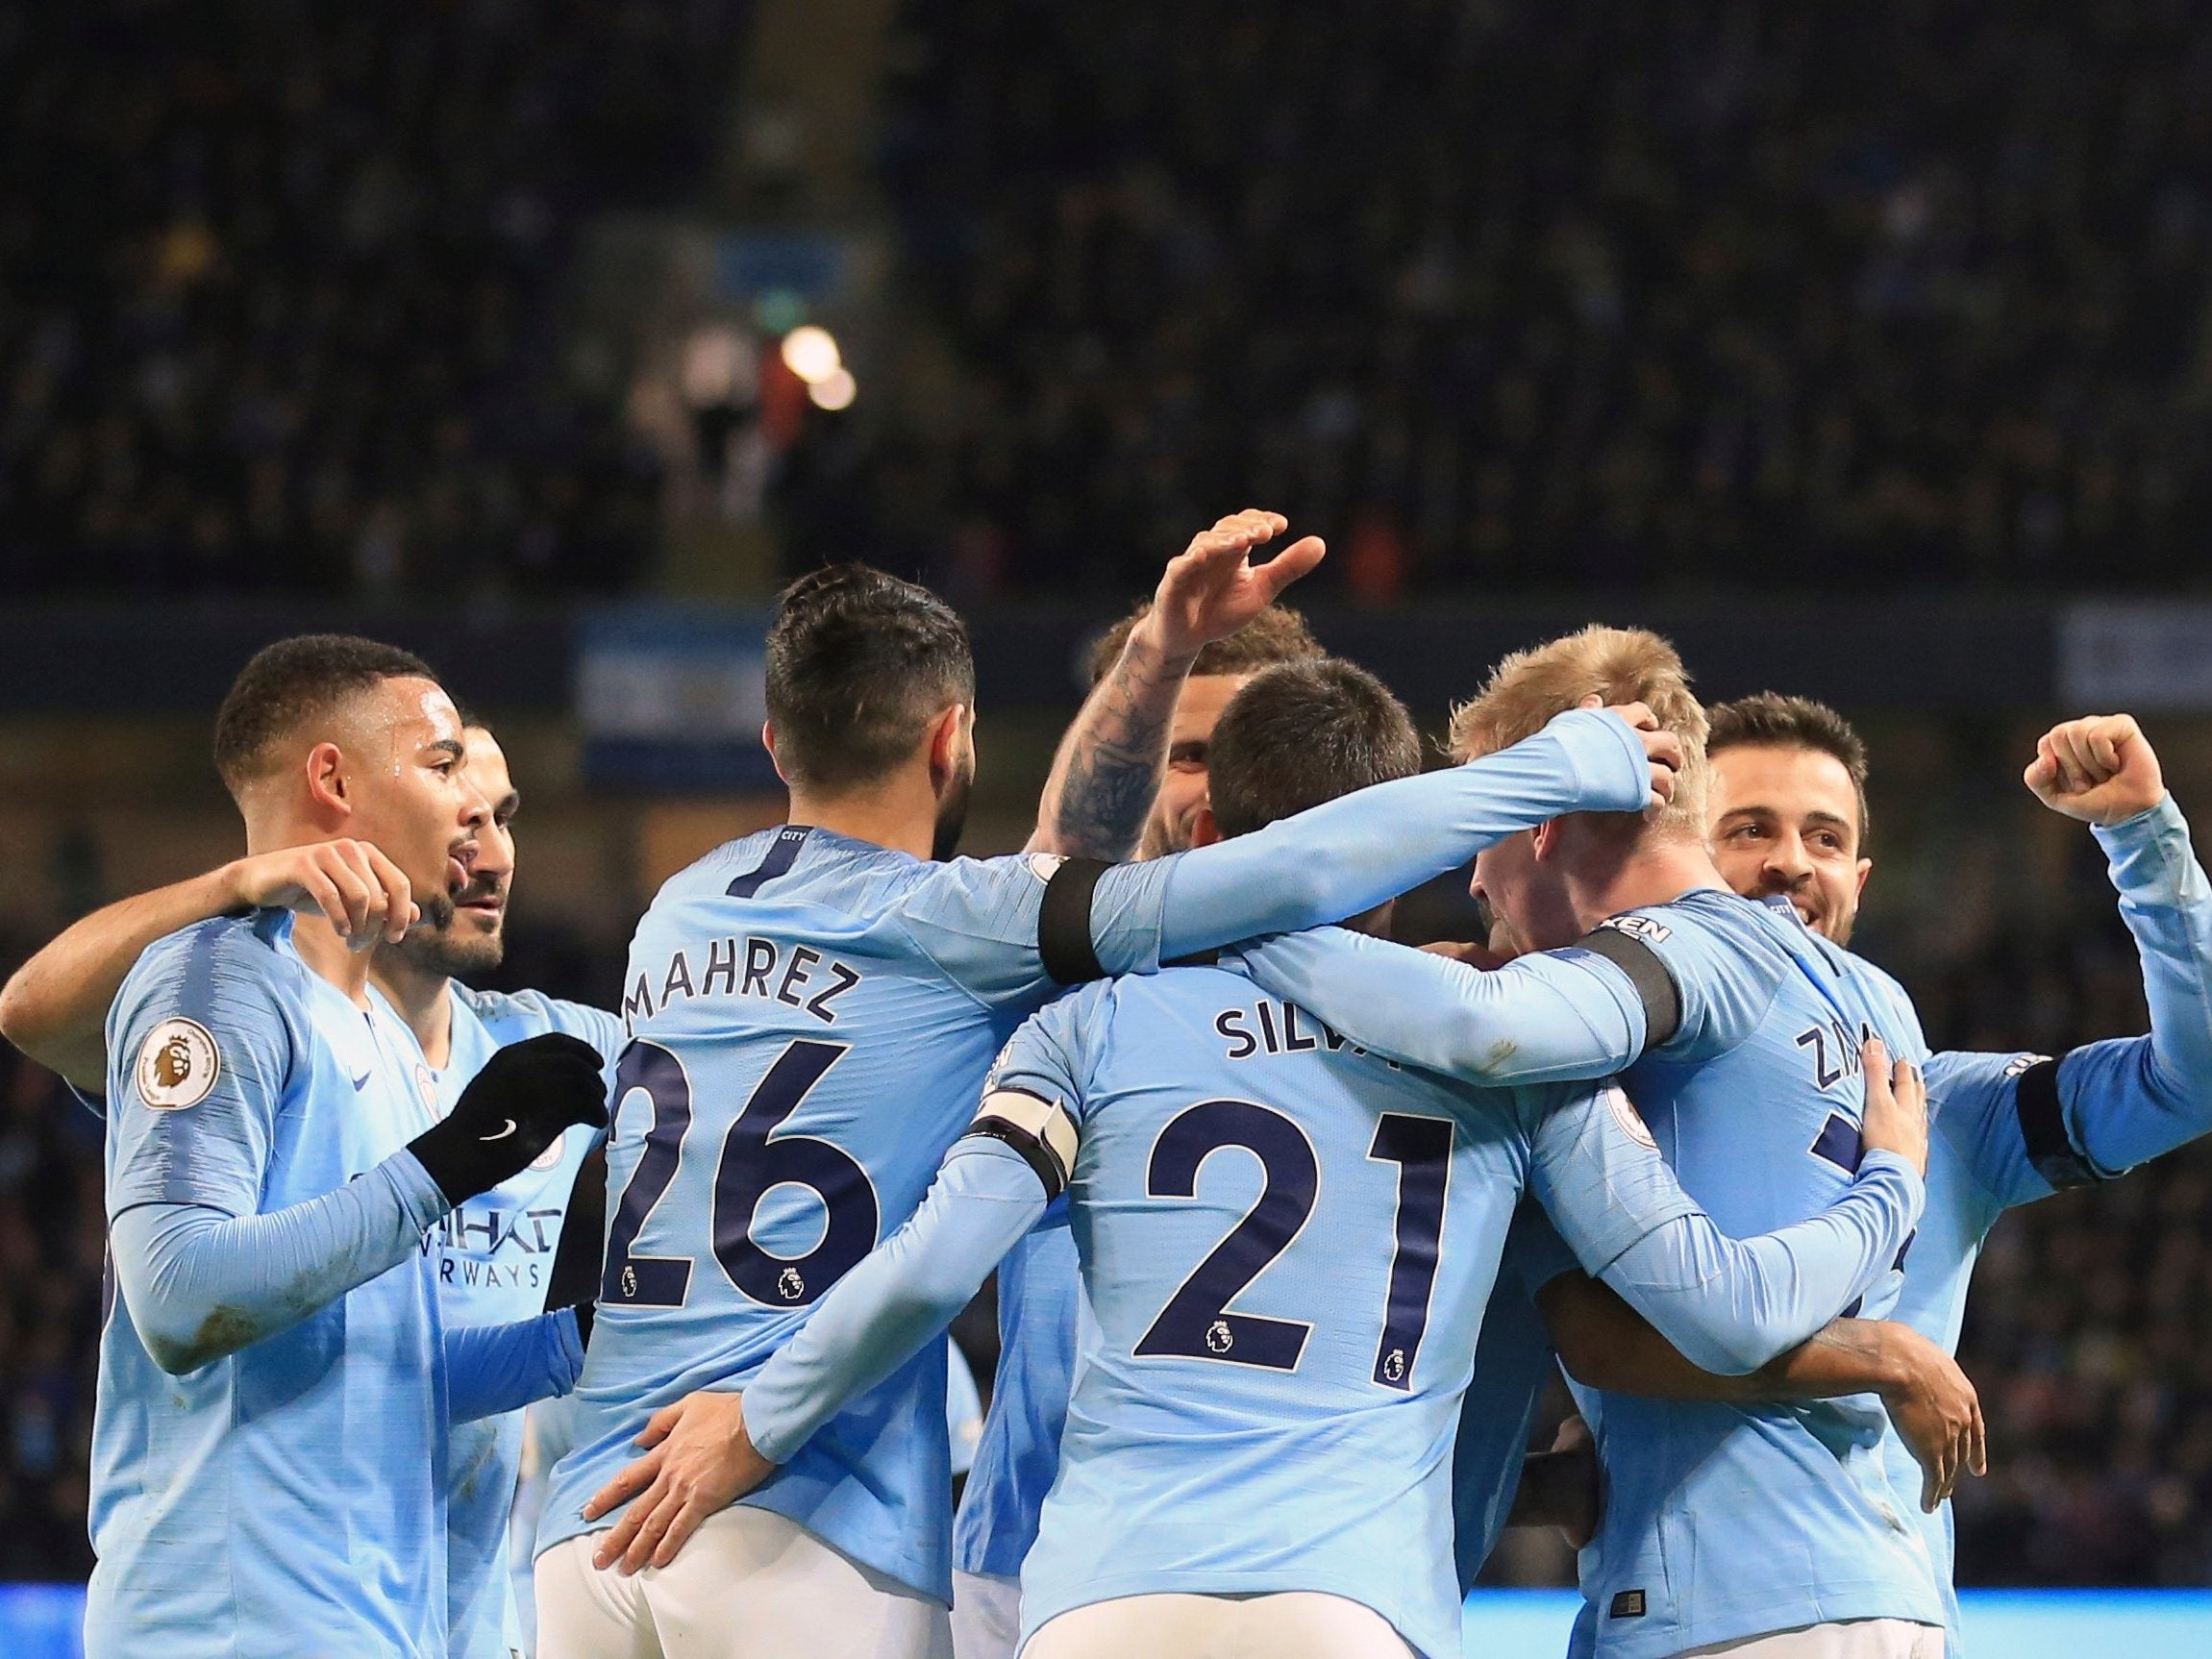 Man City Vs Chelsea: Man City Vs Chelsea Result: Champions Hit New Heights As